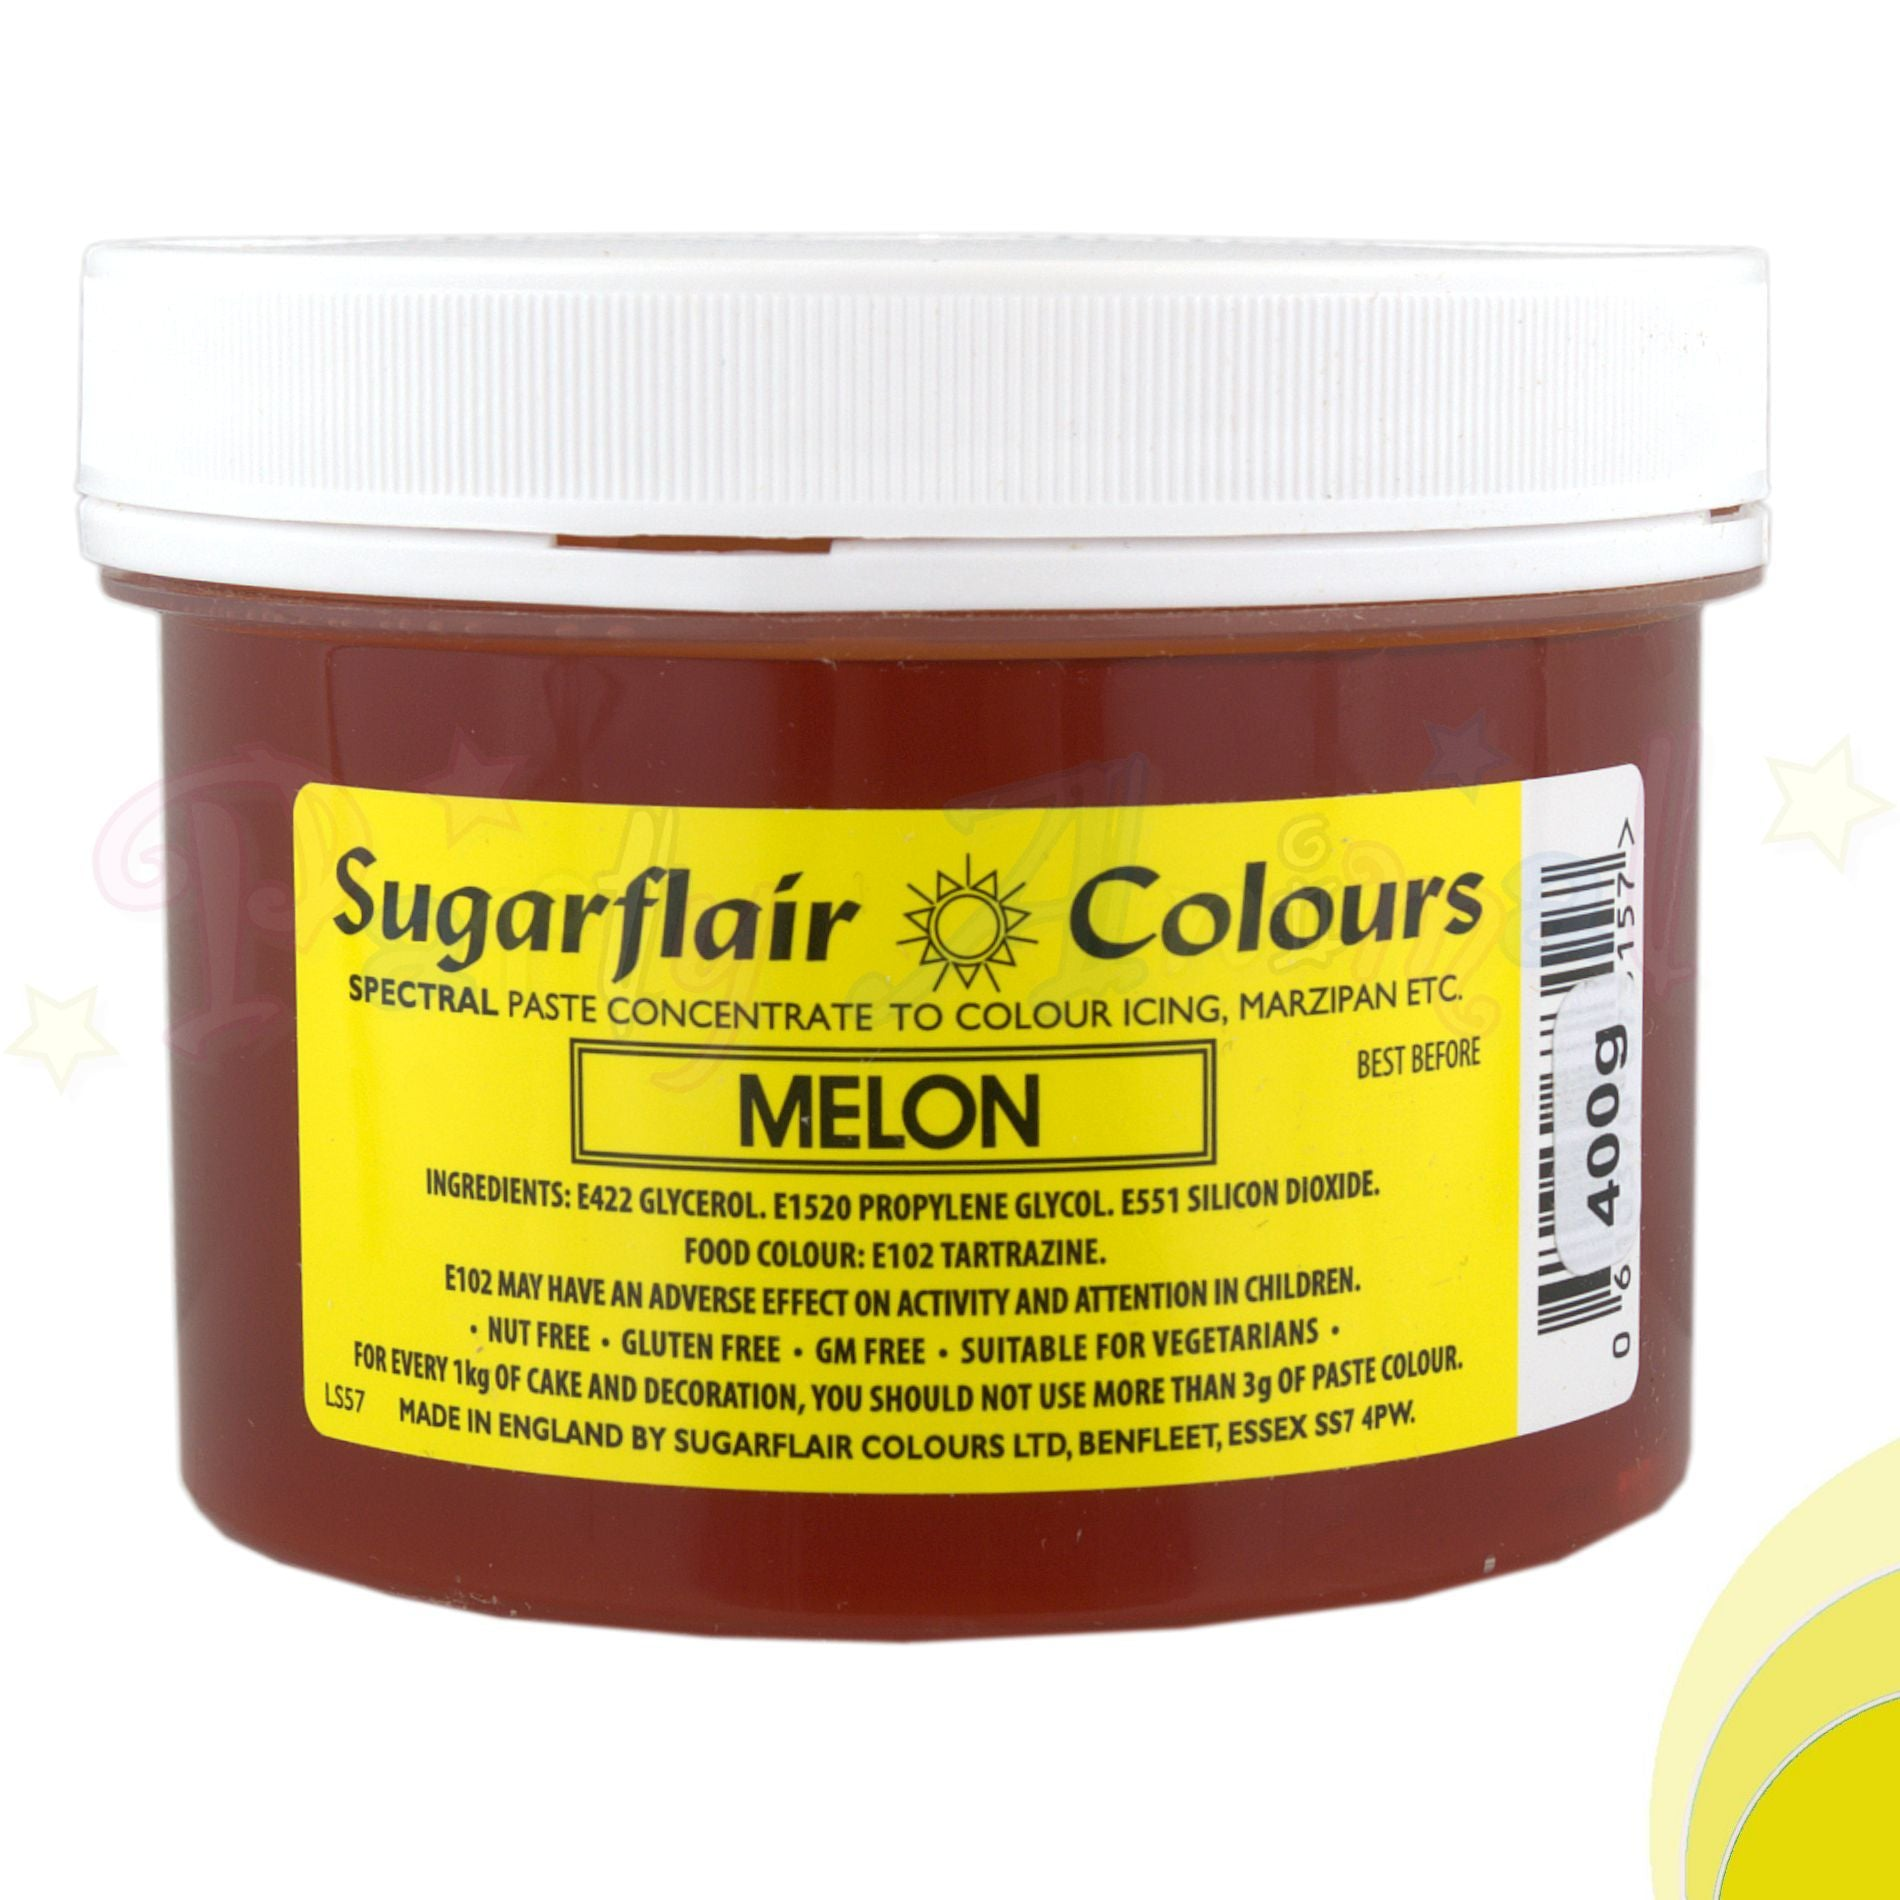 Sugarflair Spectral Paste MELON YELLOW Food Colour - BULK 400g